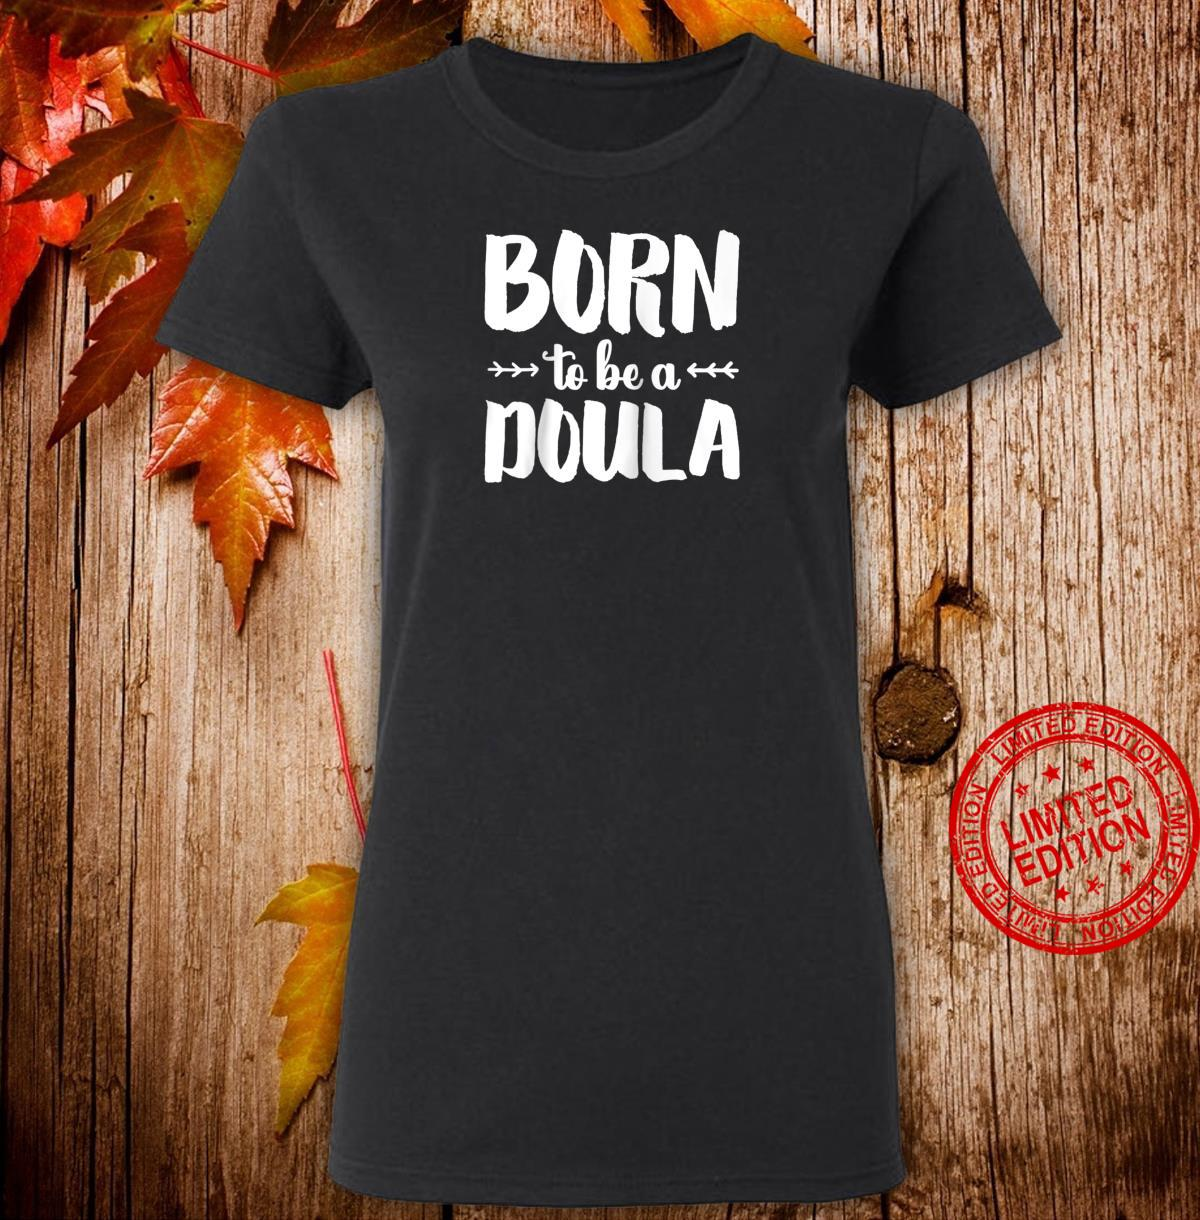 'Born to be a Doula' Birth Doula Shirt ladies tee